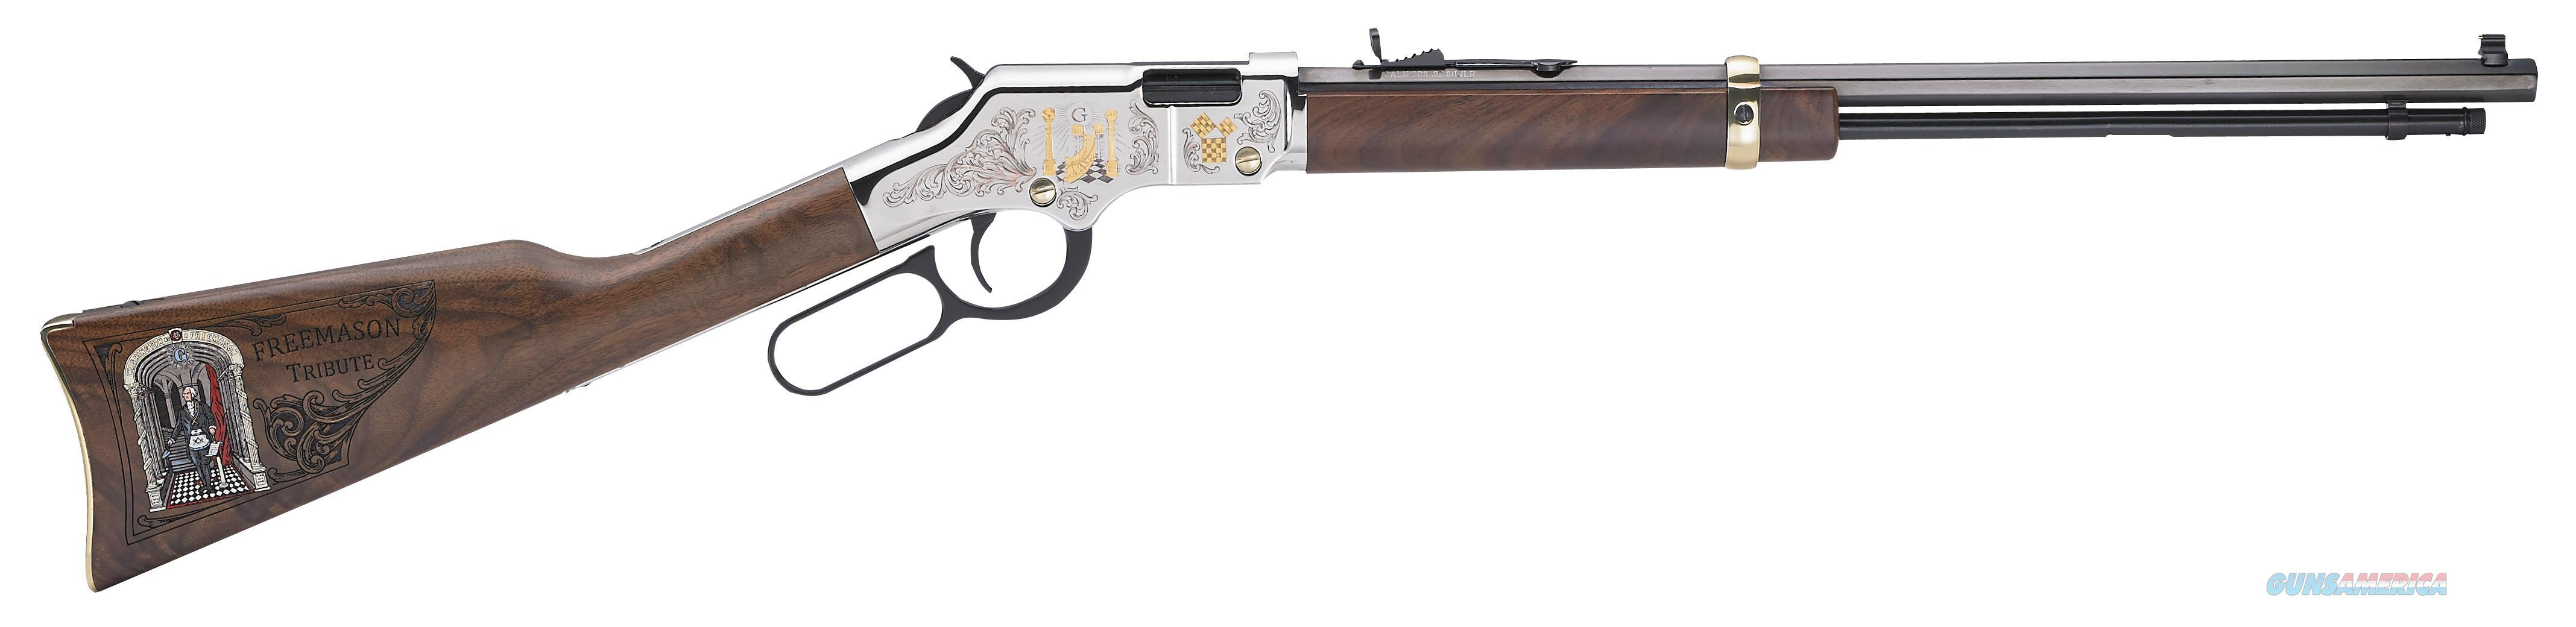 "Henry H004mas Lever Freemasons Tribute Lever 22 Long Rifle 20"" 16+1 American Walnut Stk Blued Barrel/Nickel Receiver H004MAS  Guns > Rifles > H Misc Rifles"